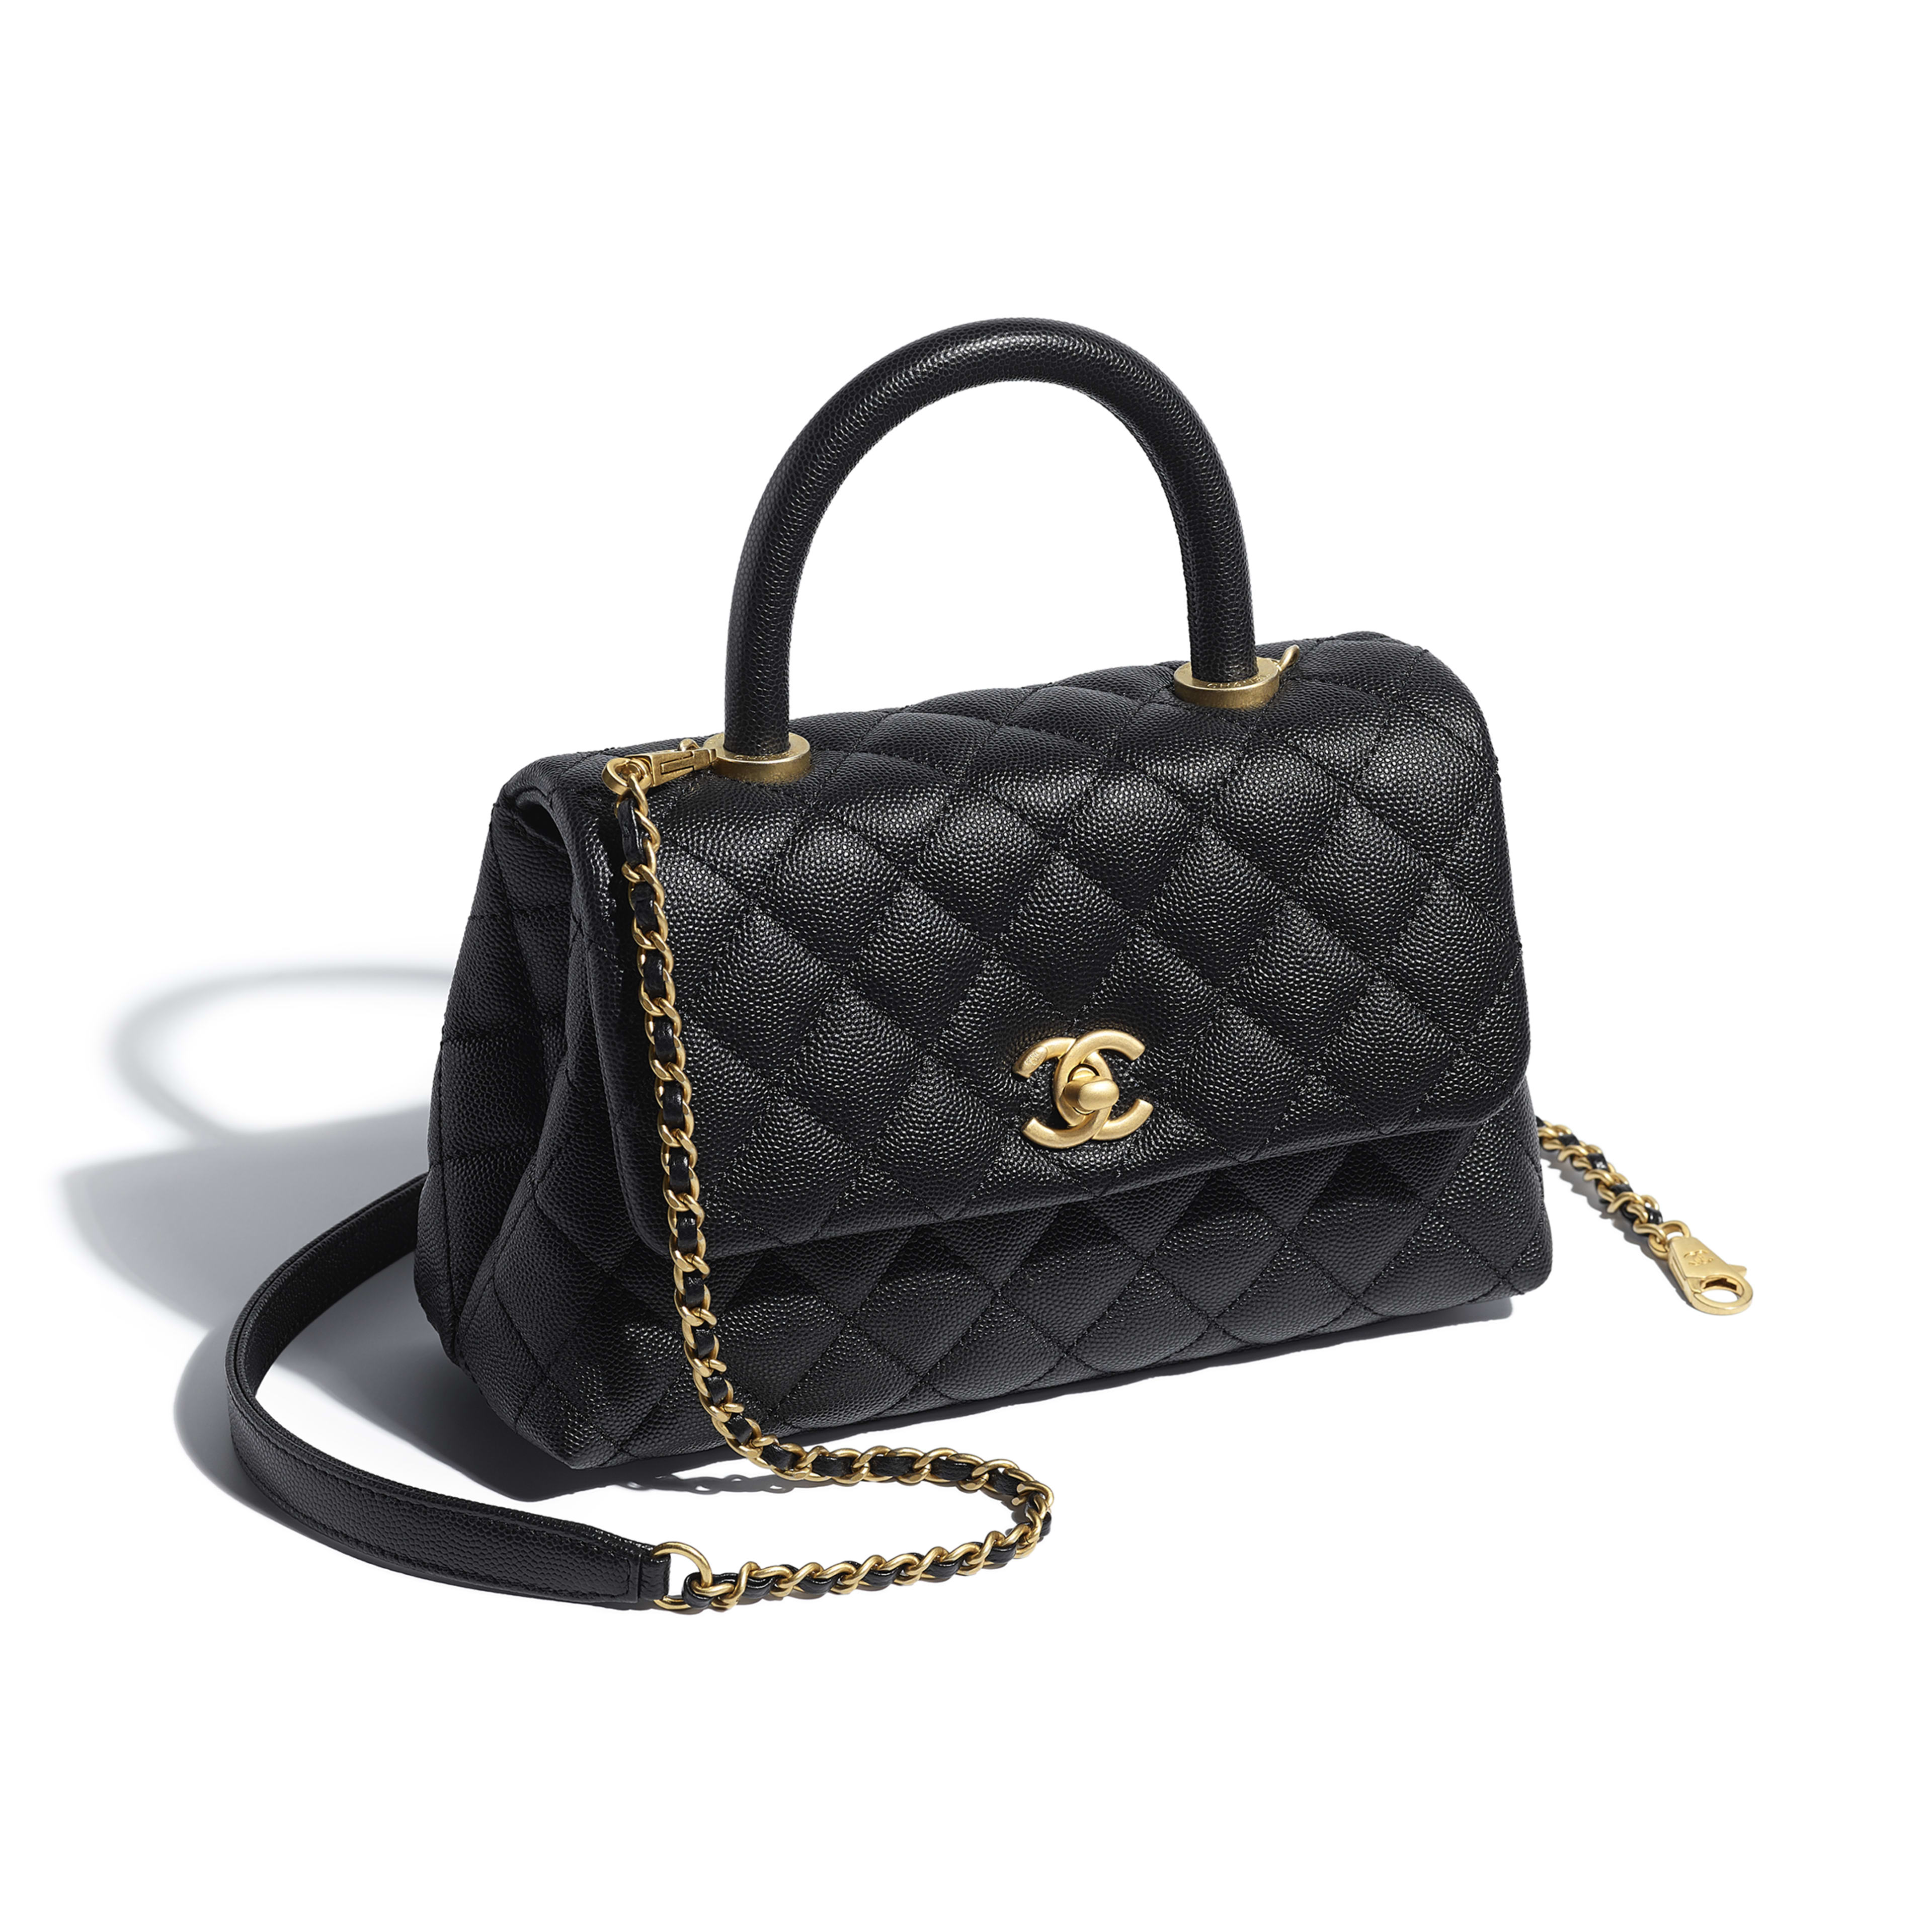 Small Flap Bag with Top Handle - Black - Grained Calfskin & Gold-Tone Metal - Other view - see full sized version